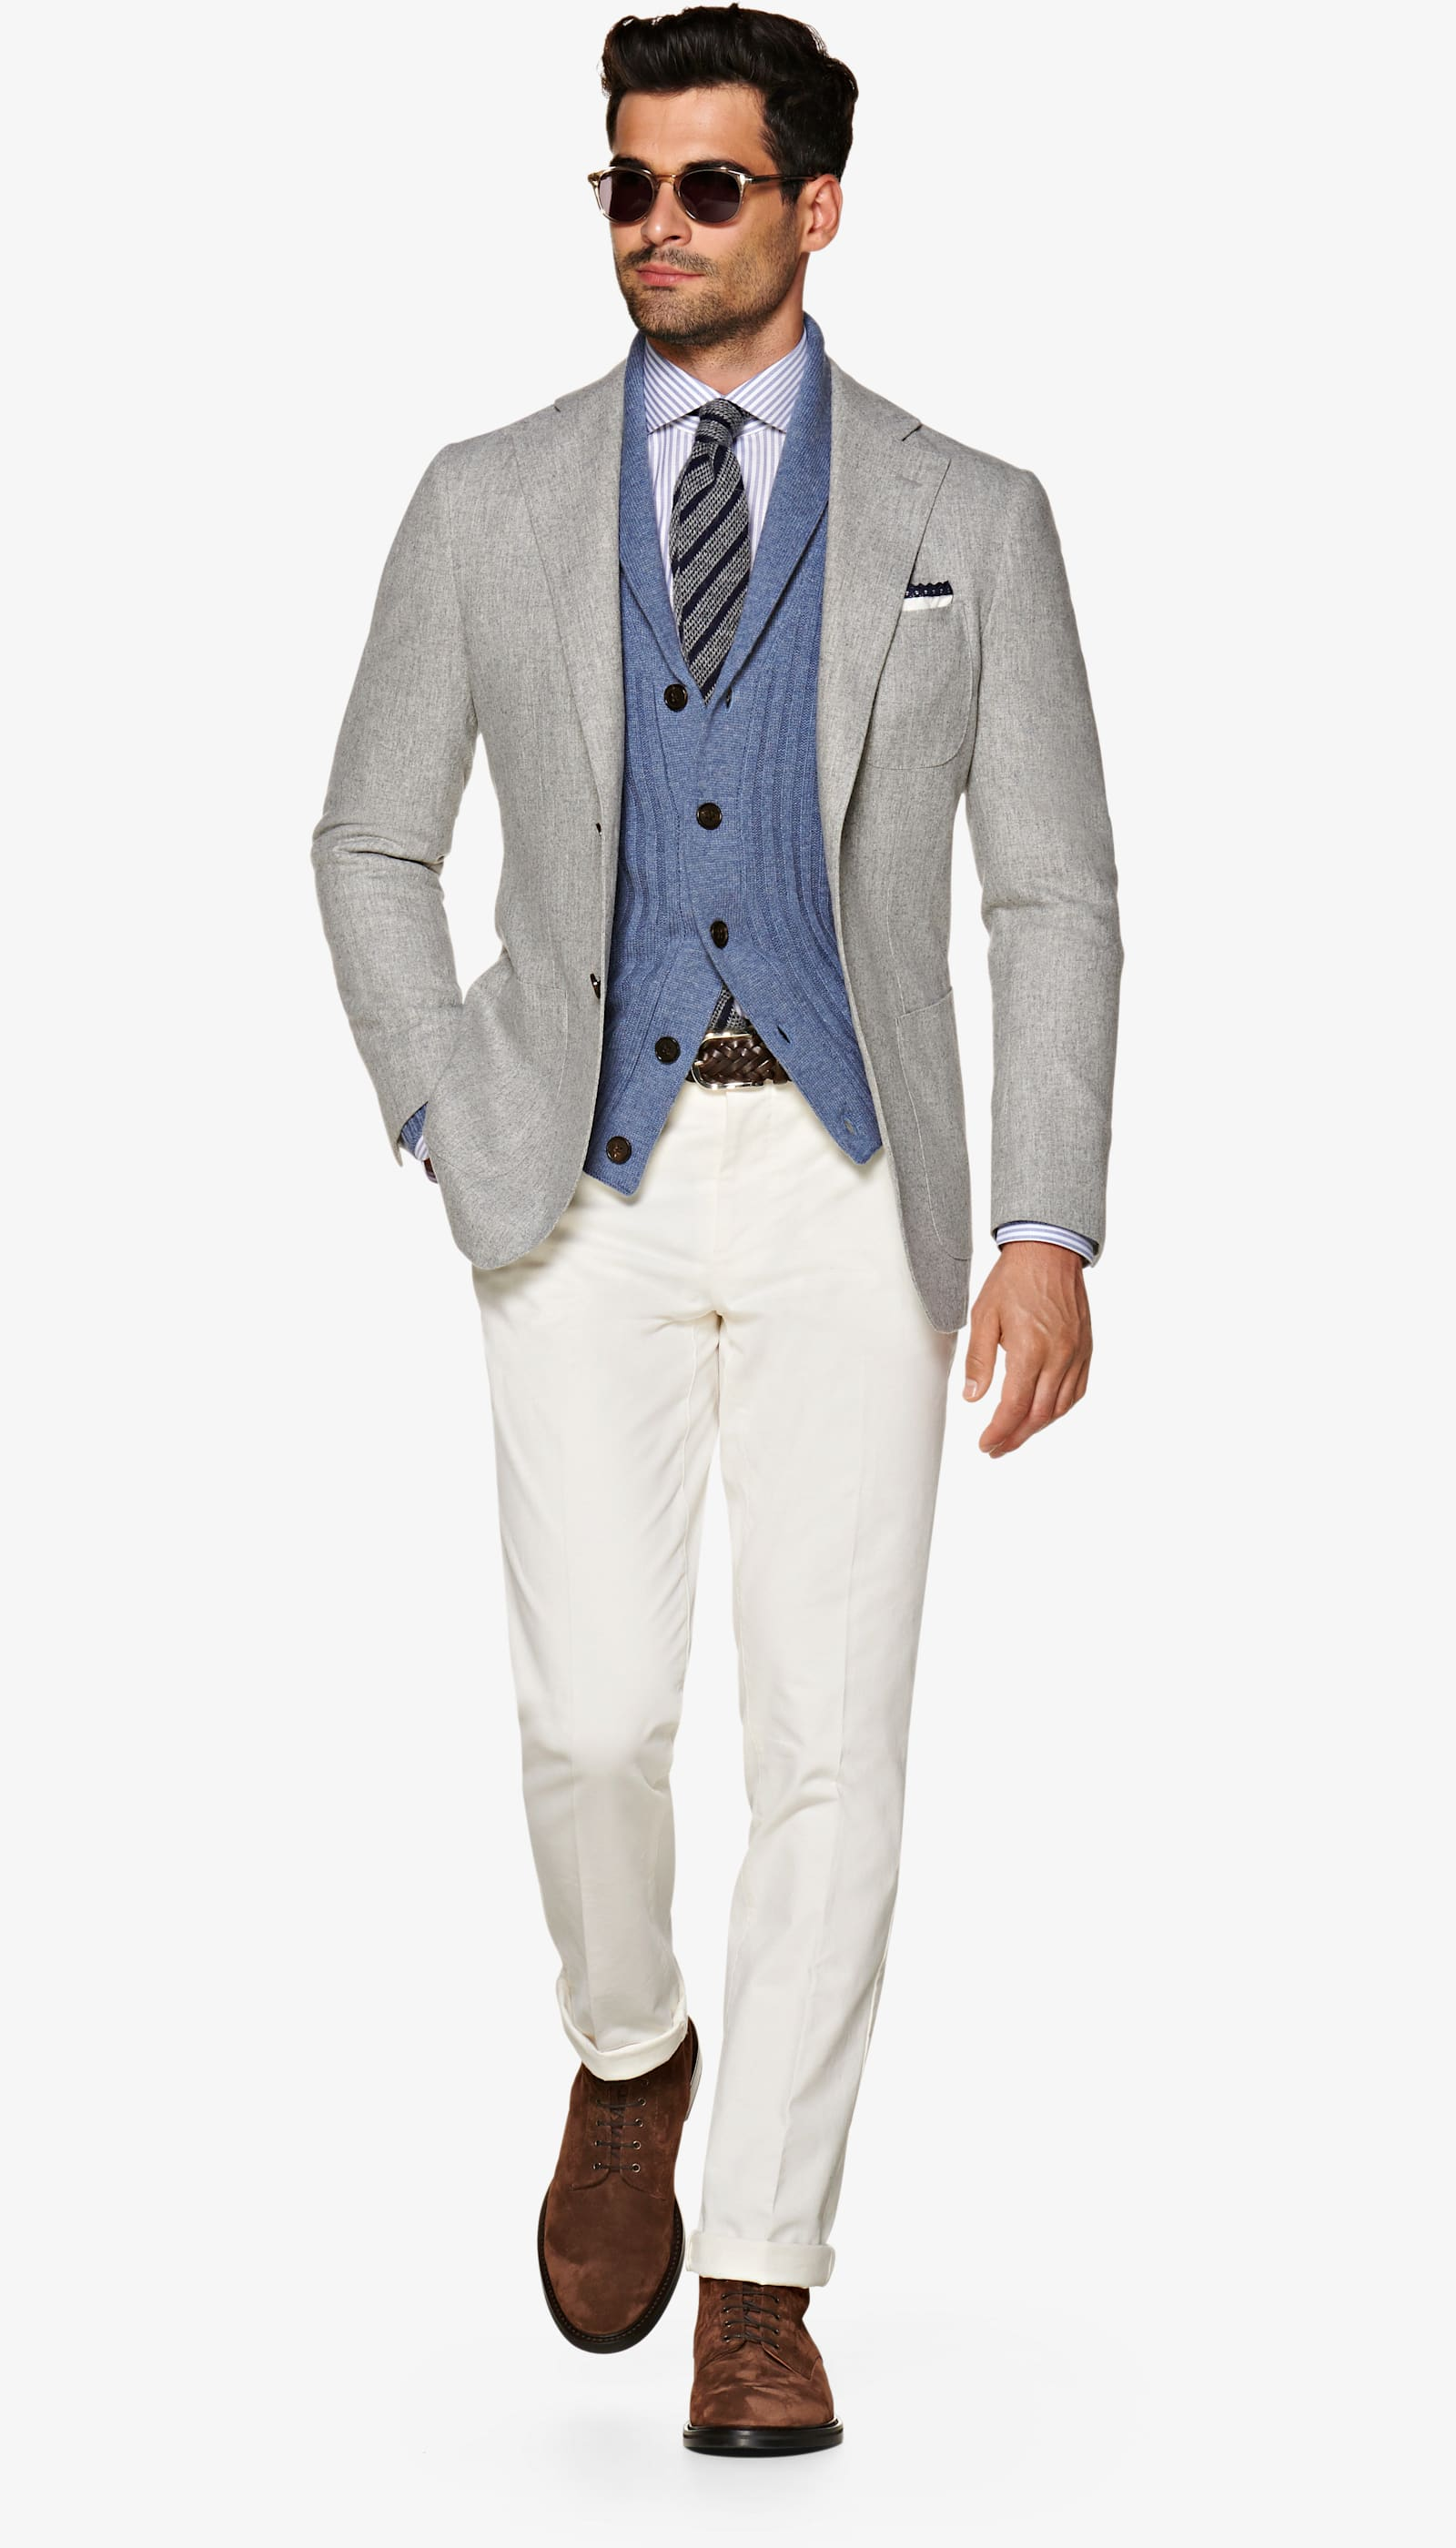 Havana Light Grey Jacket - Suit Supply makes a mean blazer. The light grey is a perfect addition to your closet that goes with everything and can be worn with more casual get-up too.